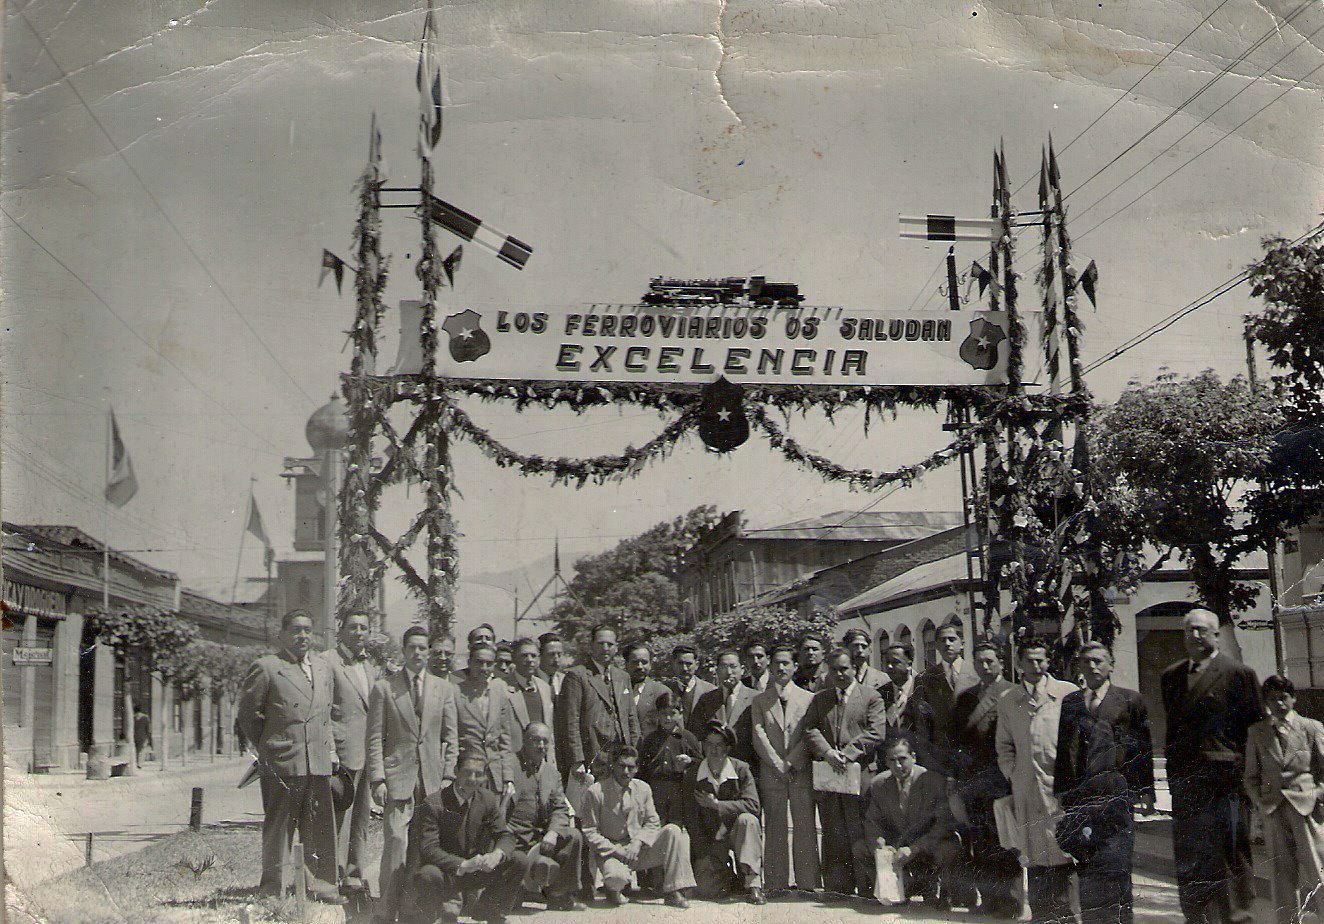 Enterreno - Fotos históricas de chile - fotos antiguas de Chile - Ferroviarios en San Fernando, 1950